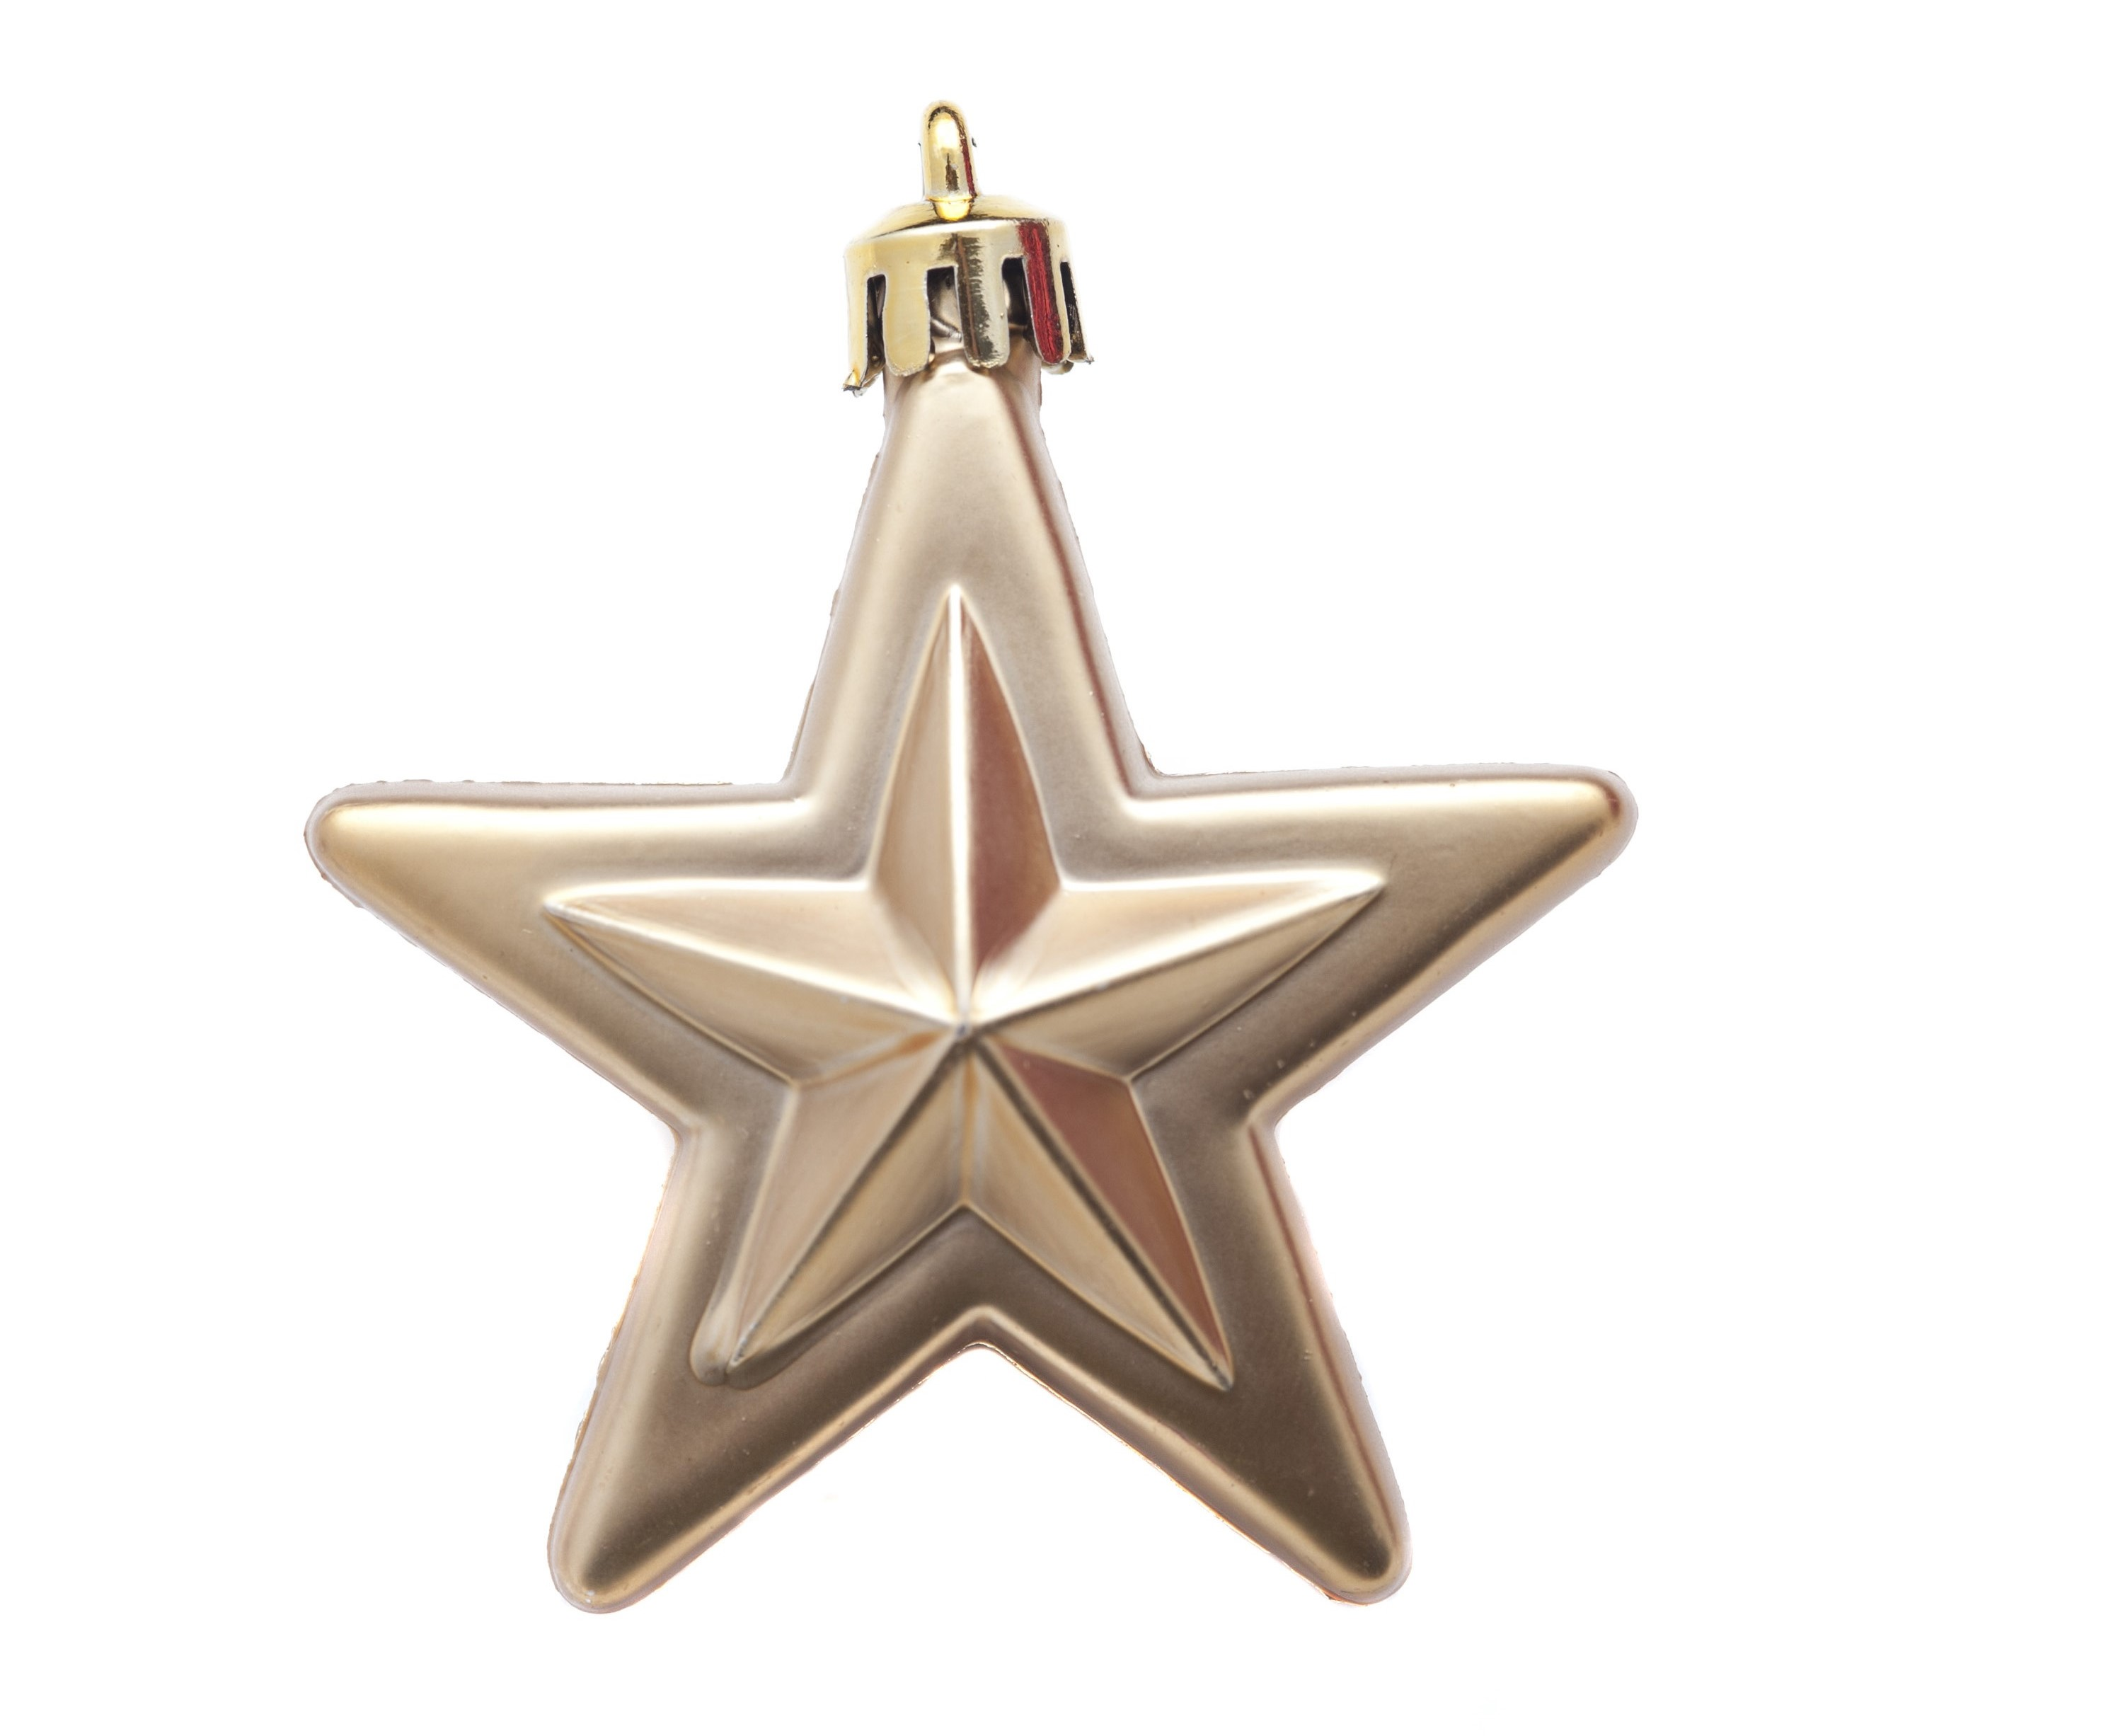 Isolated gold Christmas star hanging ornament on a white background